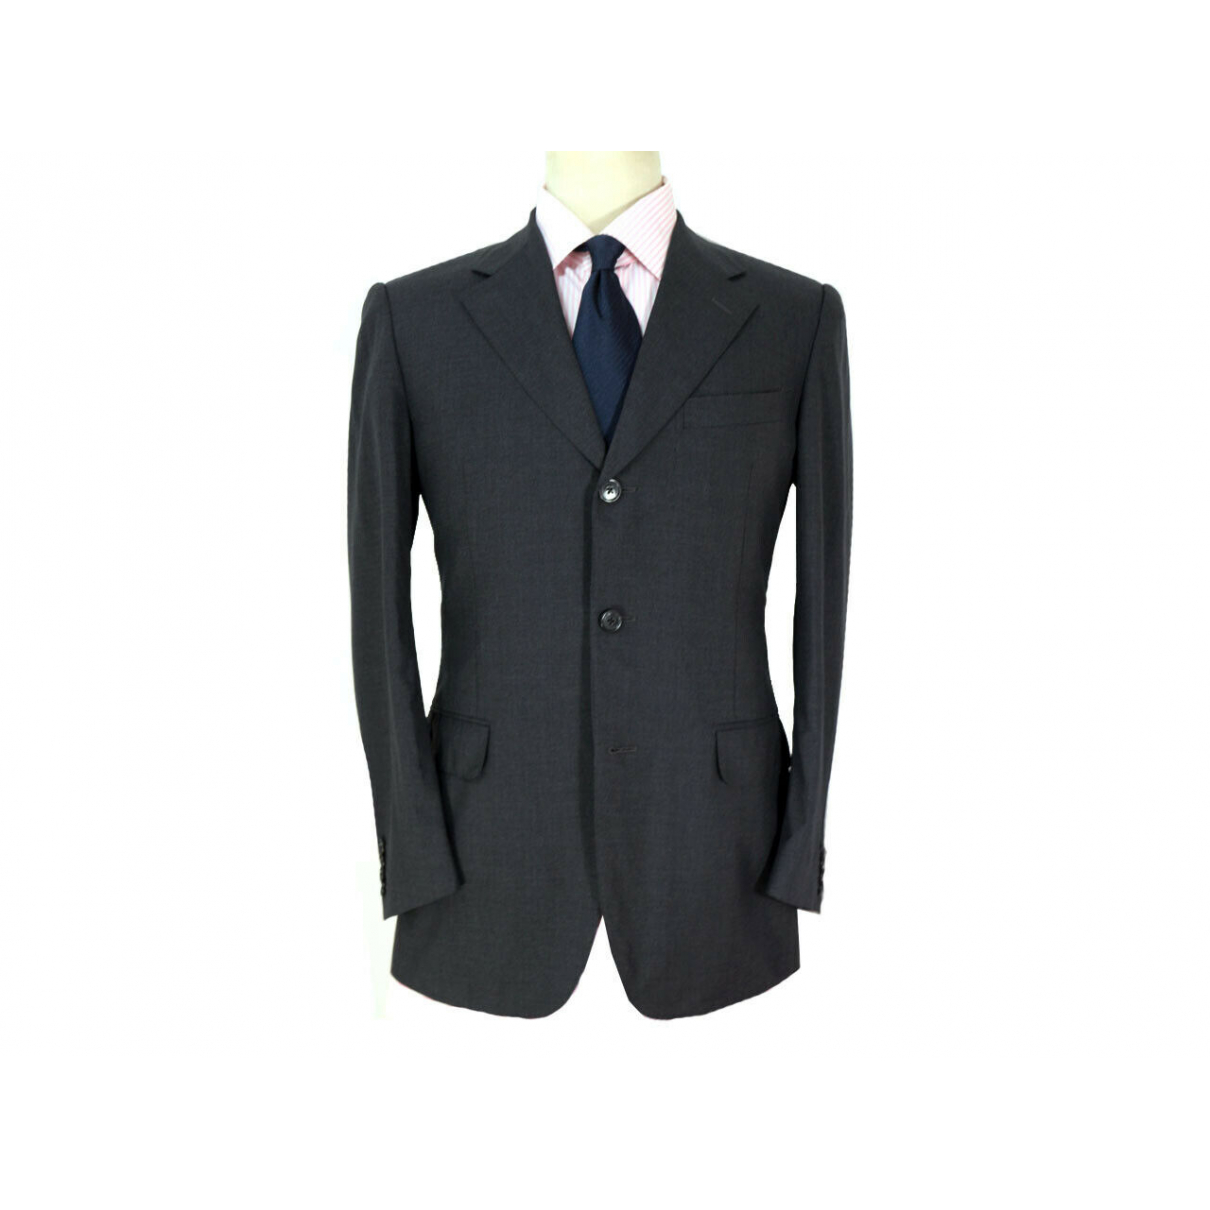 Corneliani \N Black Wool jacket  for Men 48 IT